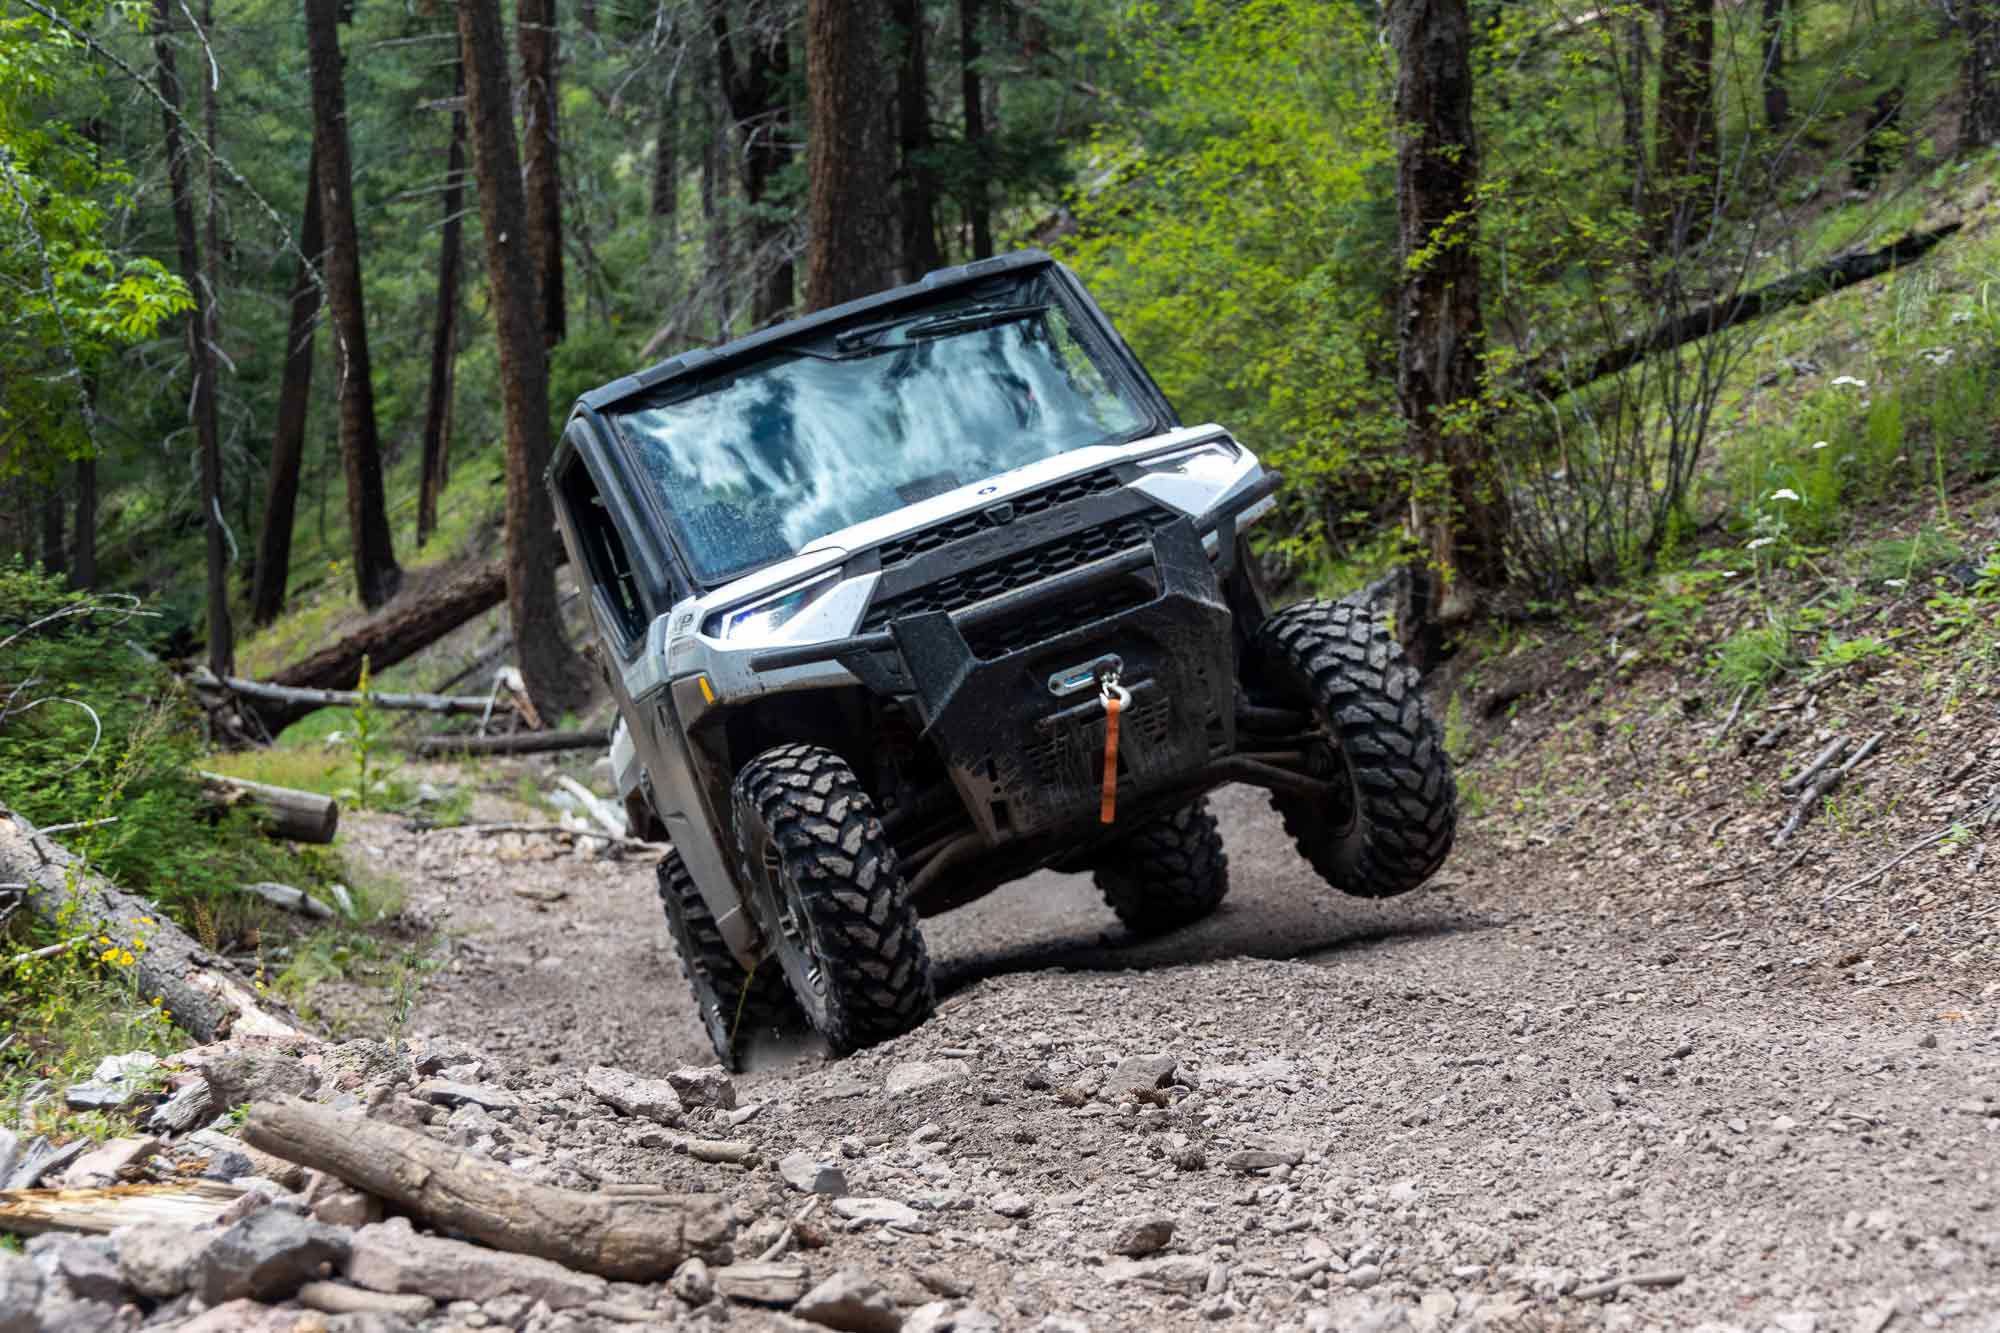 Traveling in the Gila is more about communing with nature than it is technical driving, but that doesn't mean there's no technical driving. The 2021 Polaris Ranger XP1000 Trail Boss NorthStar Edition handled it all like a boss.